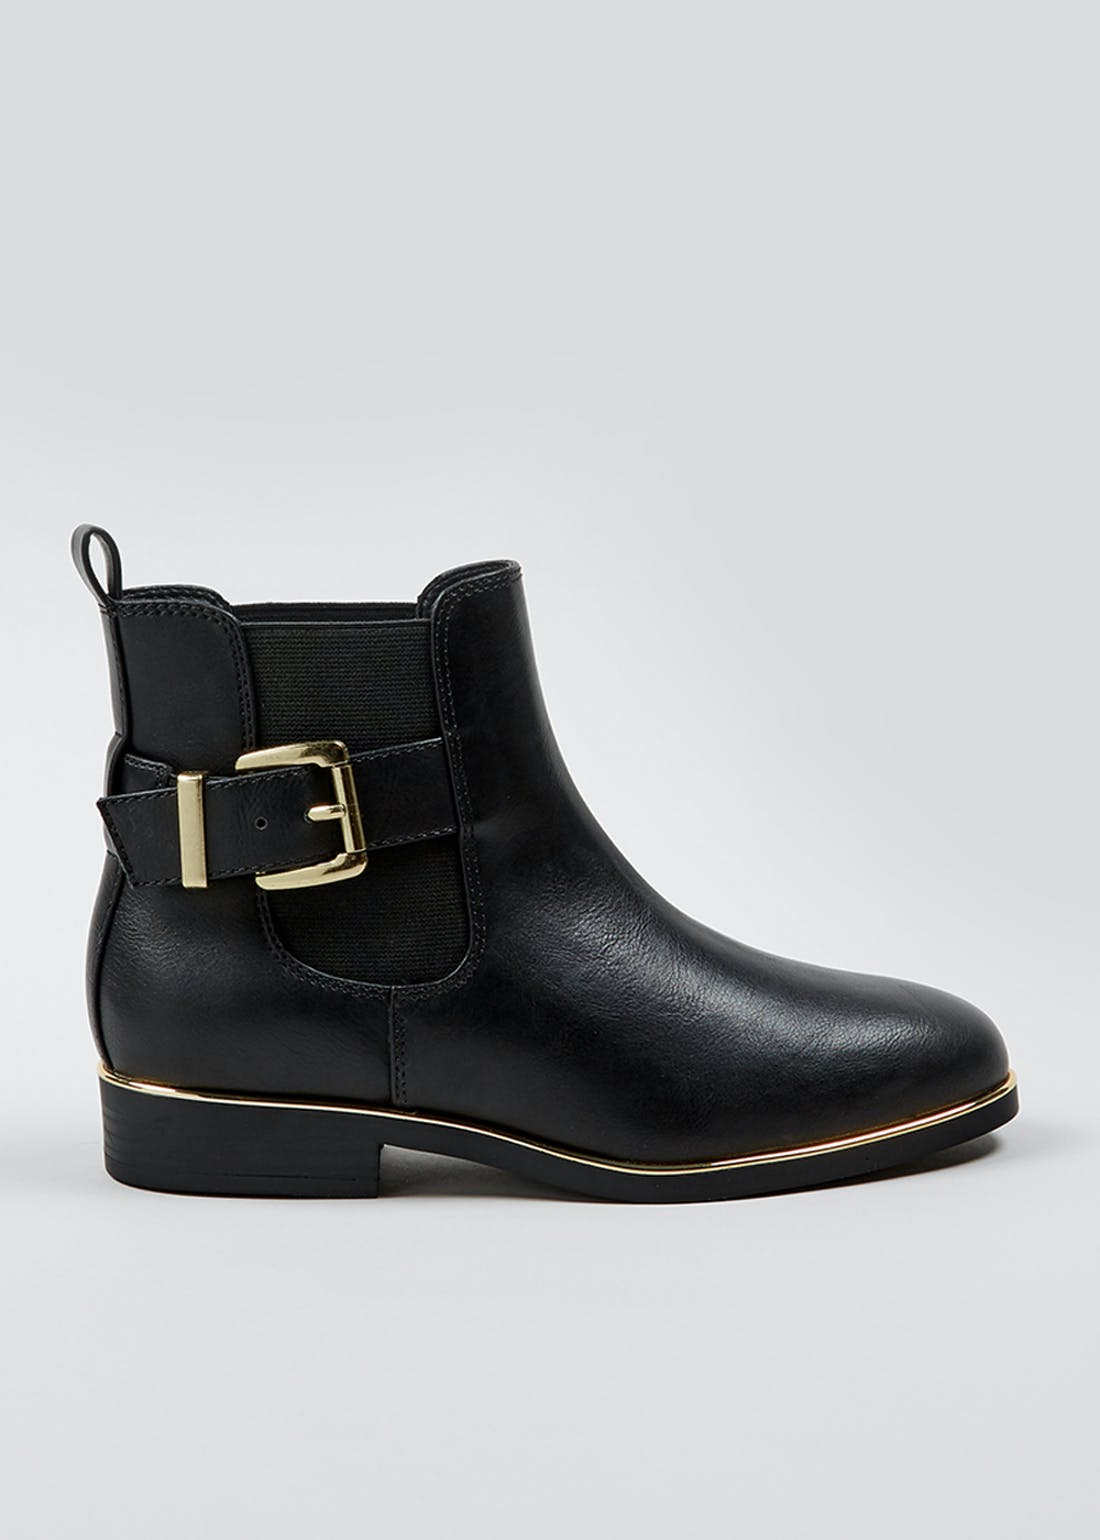 Black Gold Trim Ankle Boots